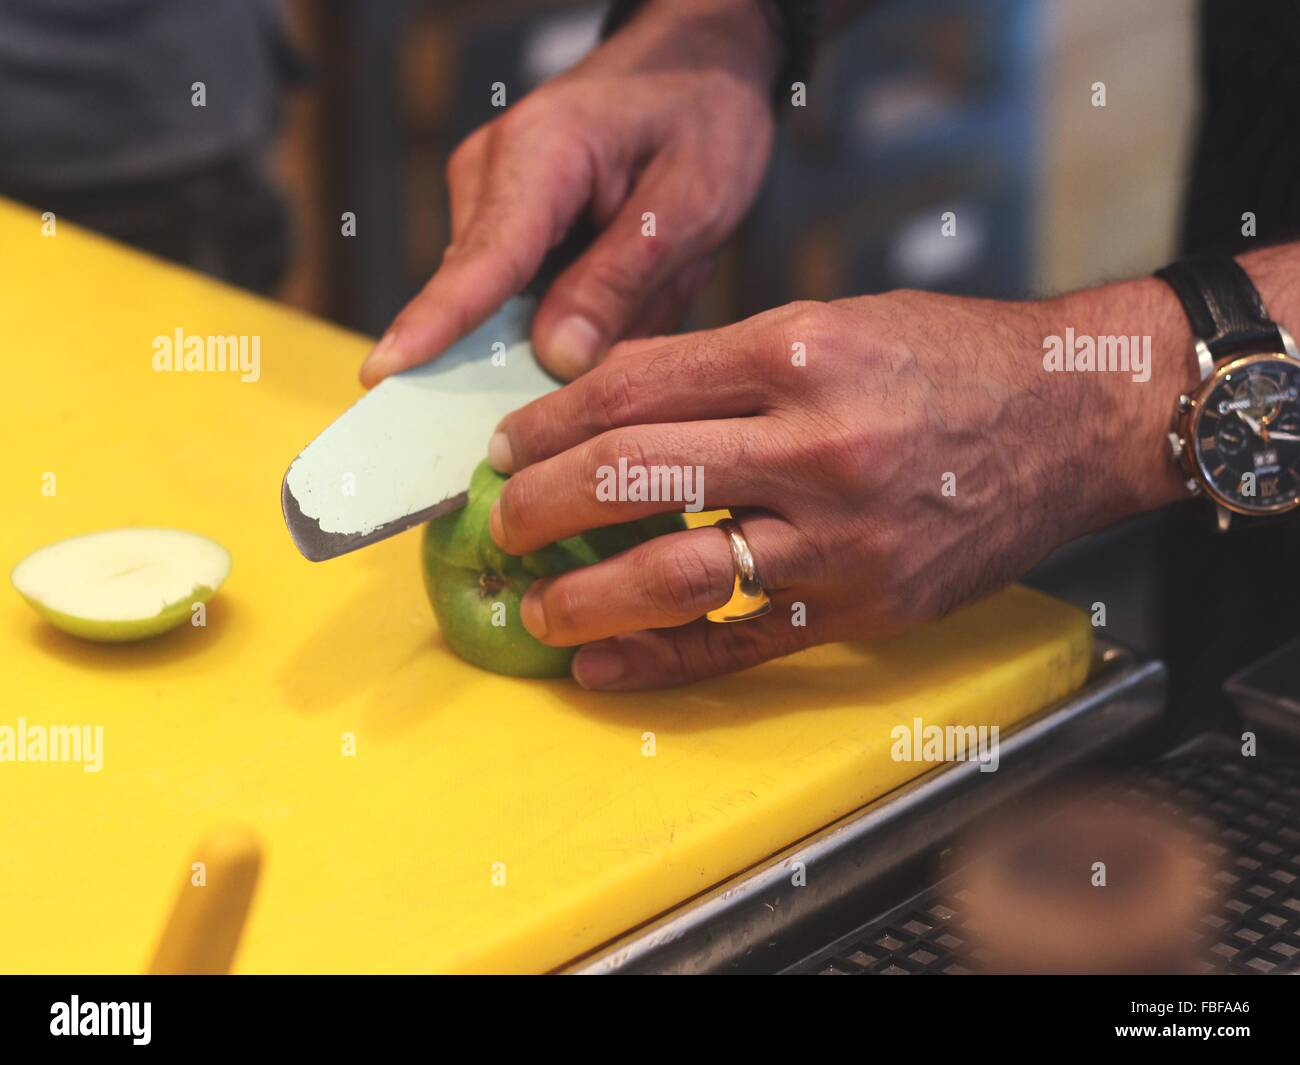 Cropped Image Of Chef Cutting Apple With Knife - Stock Image